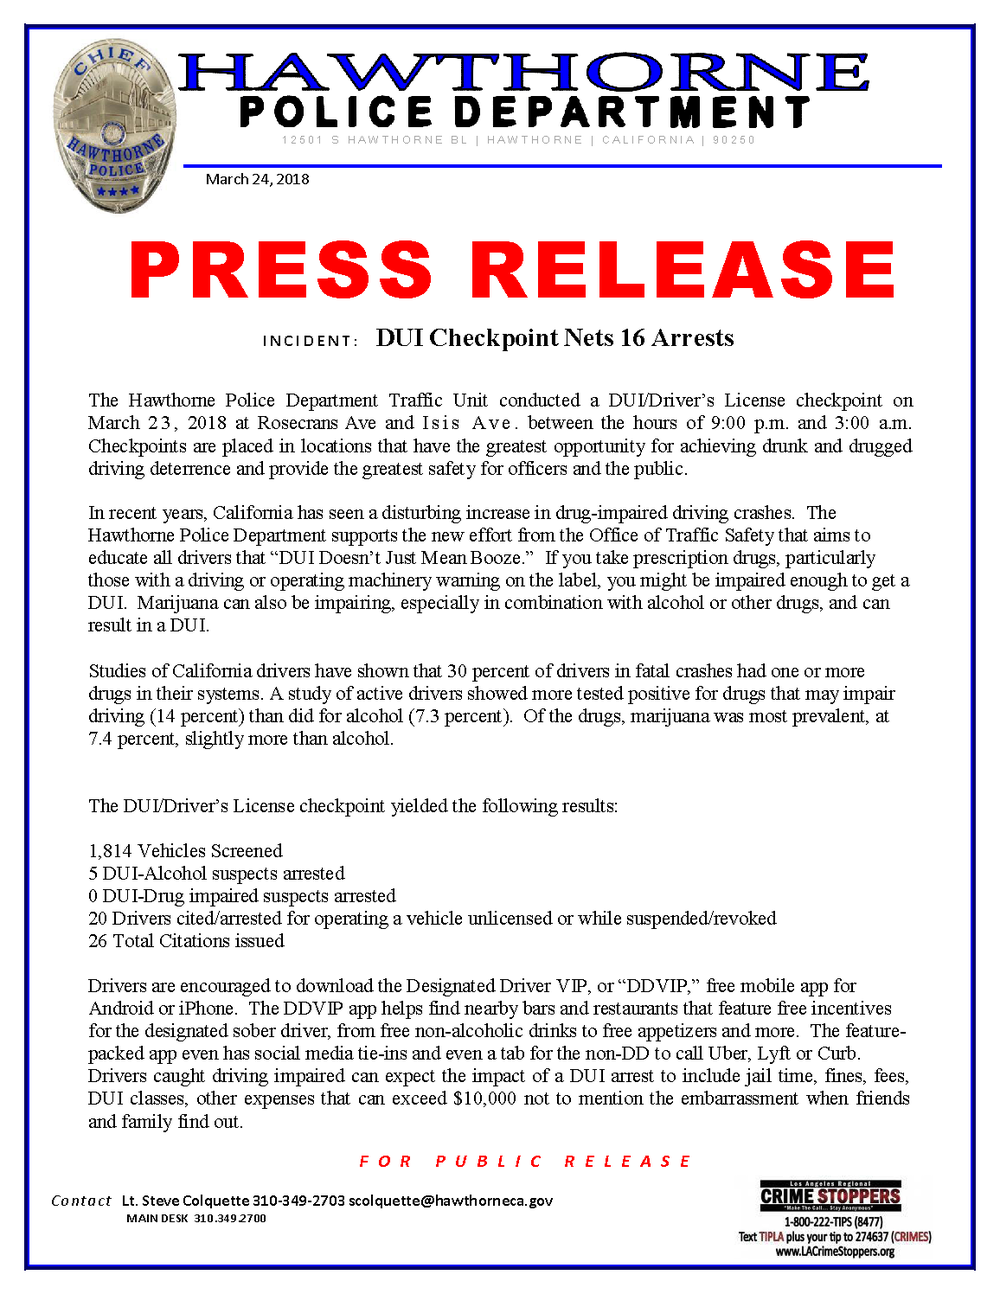 DUI - CDL CHKPOINT RESULTS PRESS RELEASE 003-23-18_Page_1.png